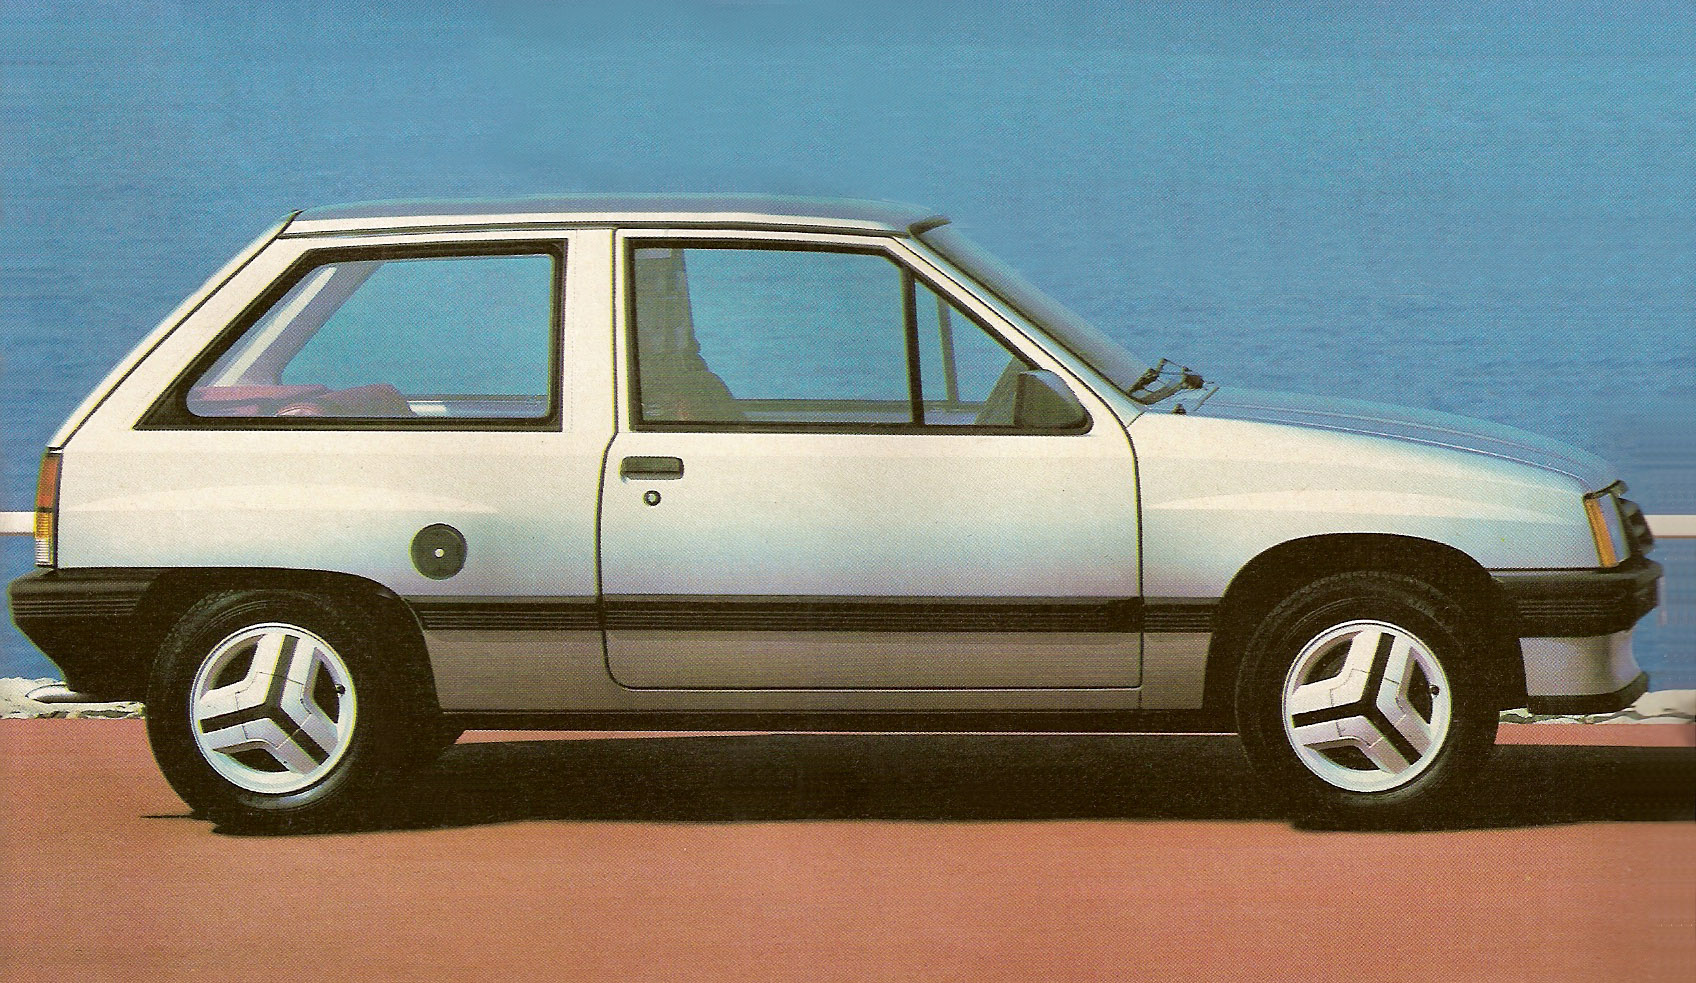 1983 Vauxhall Nova